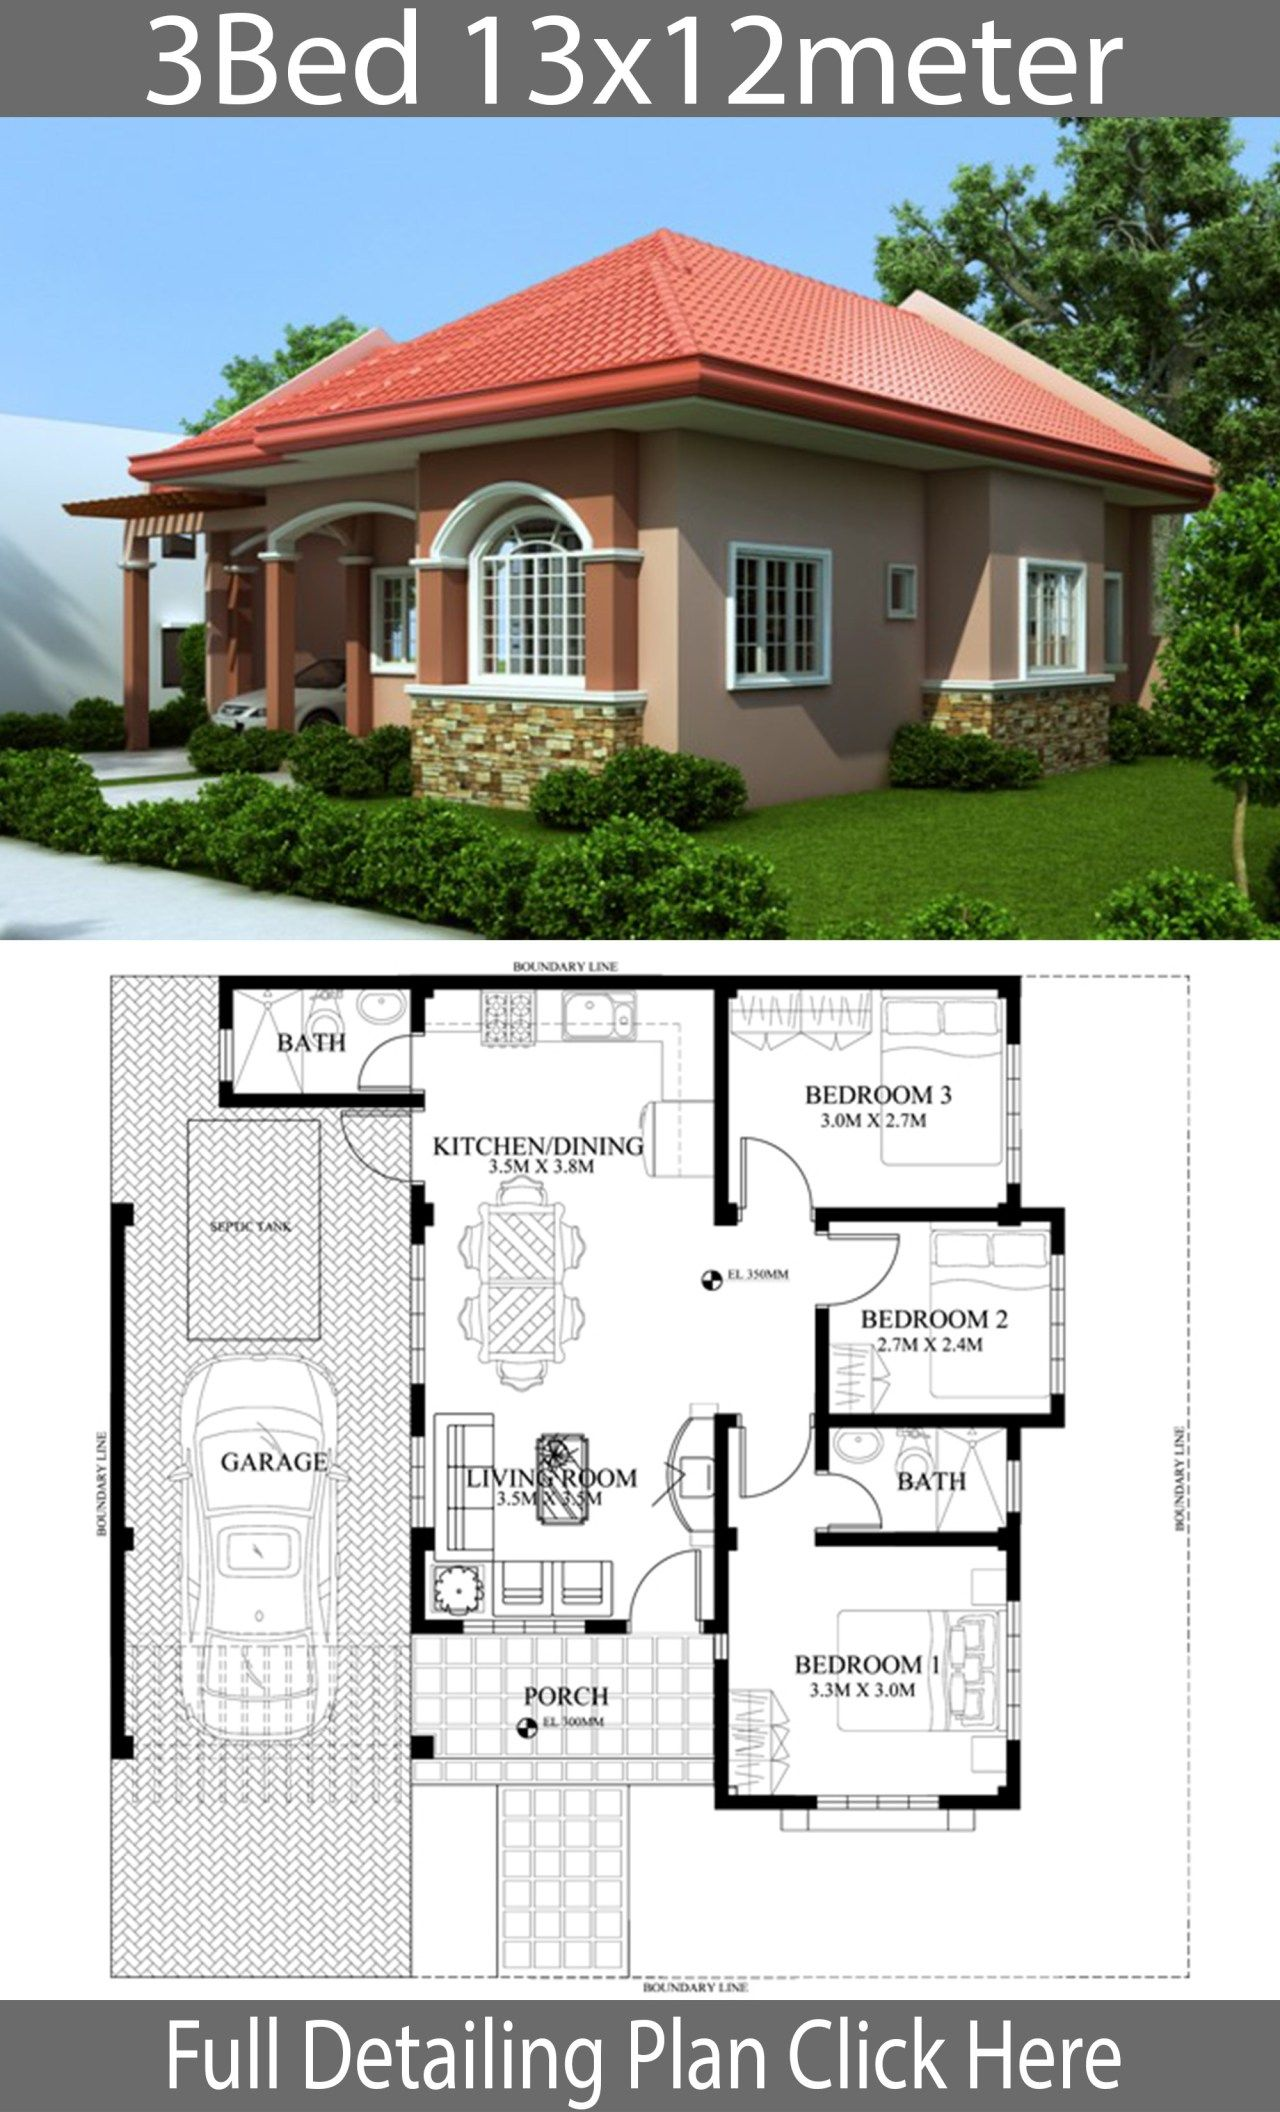 Home Design Plan 13x12m With 3 Bedrooms Home Ideas House Construction Plan Modern Bungalow House Affordable House Plans